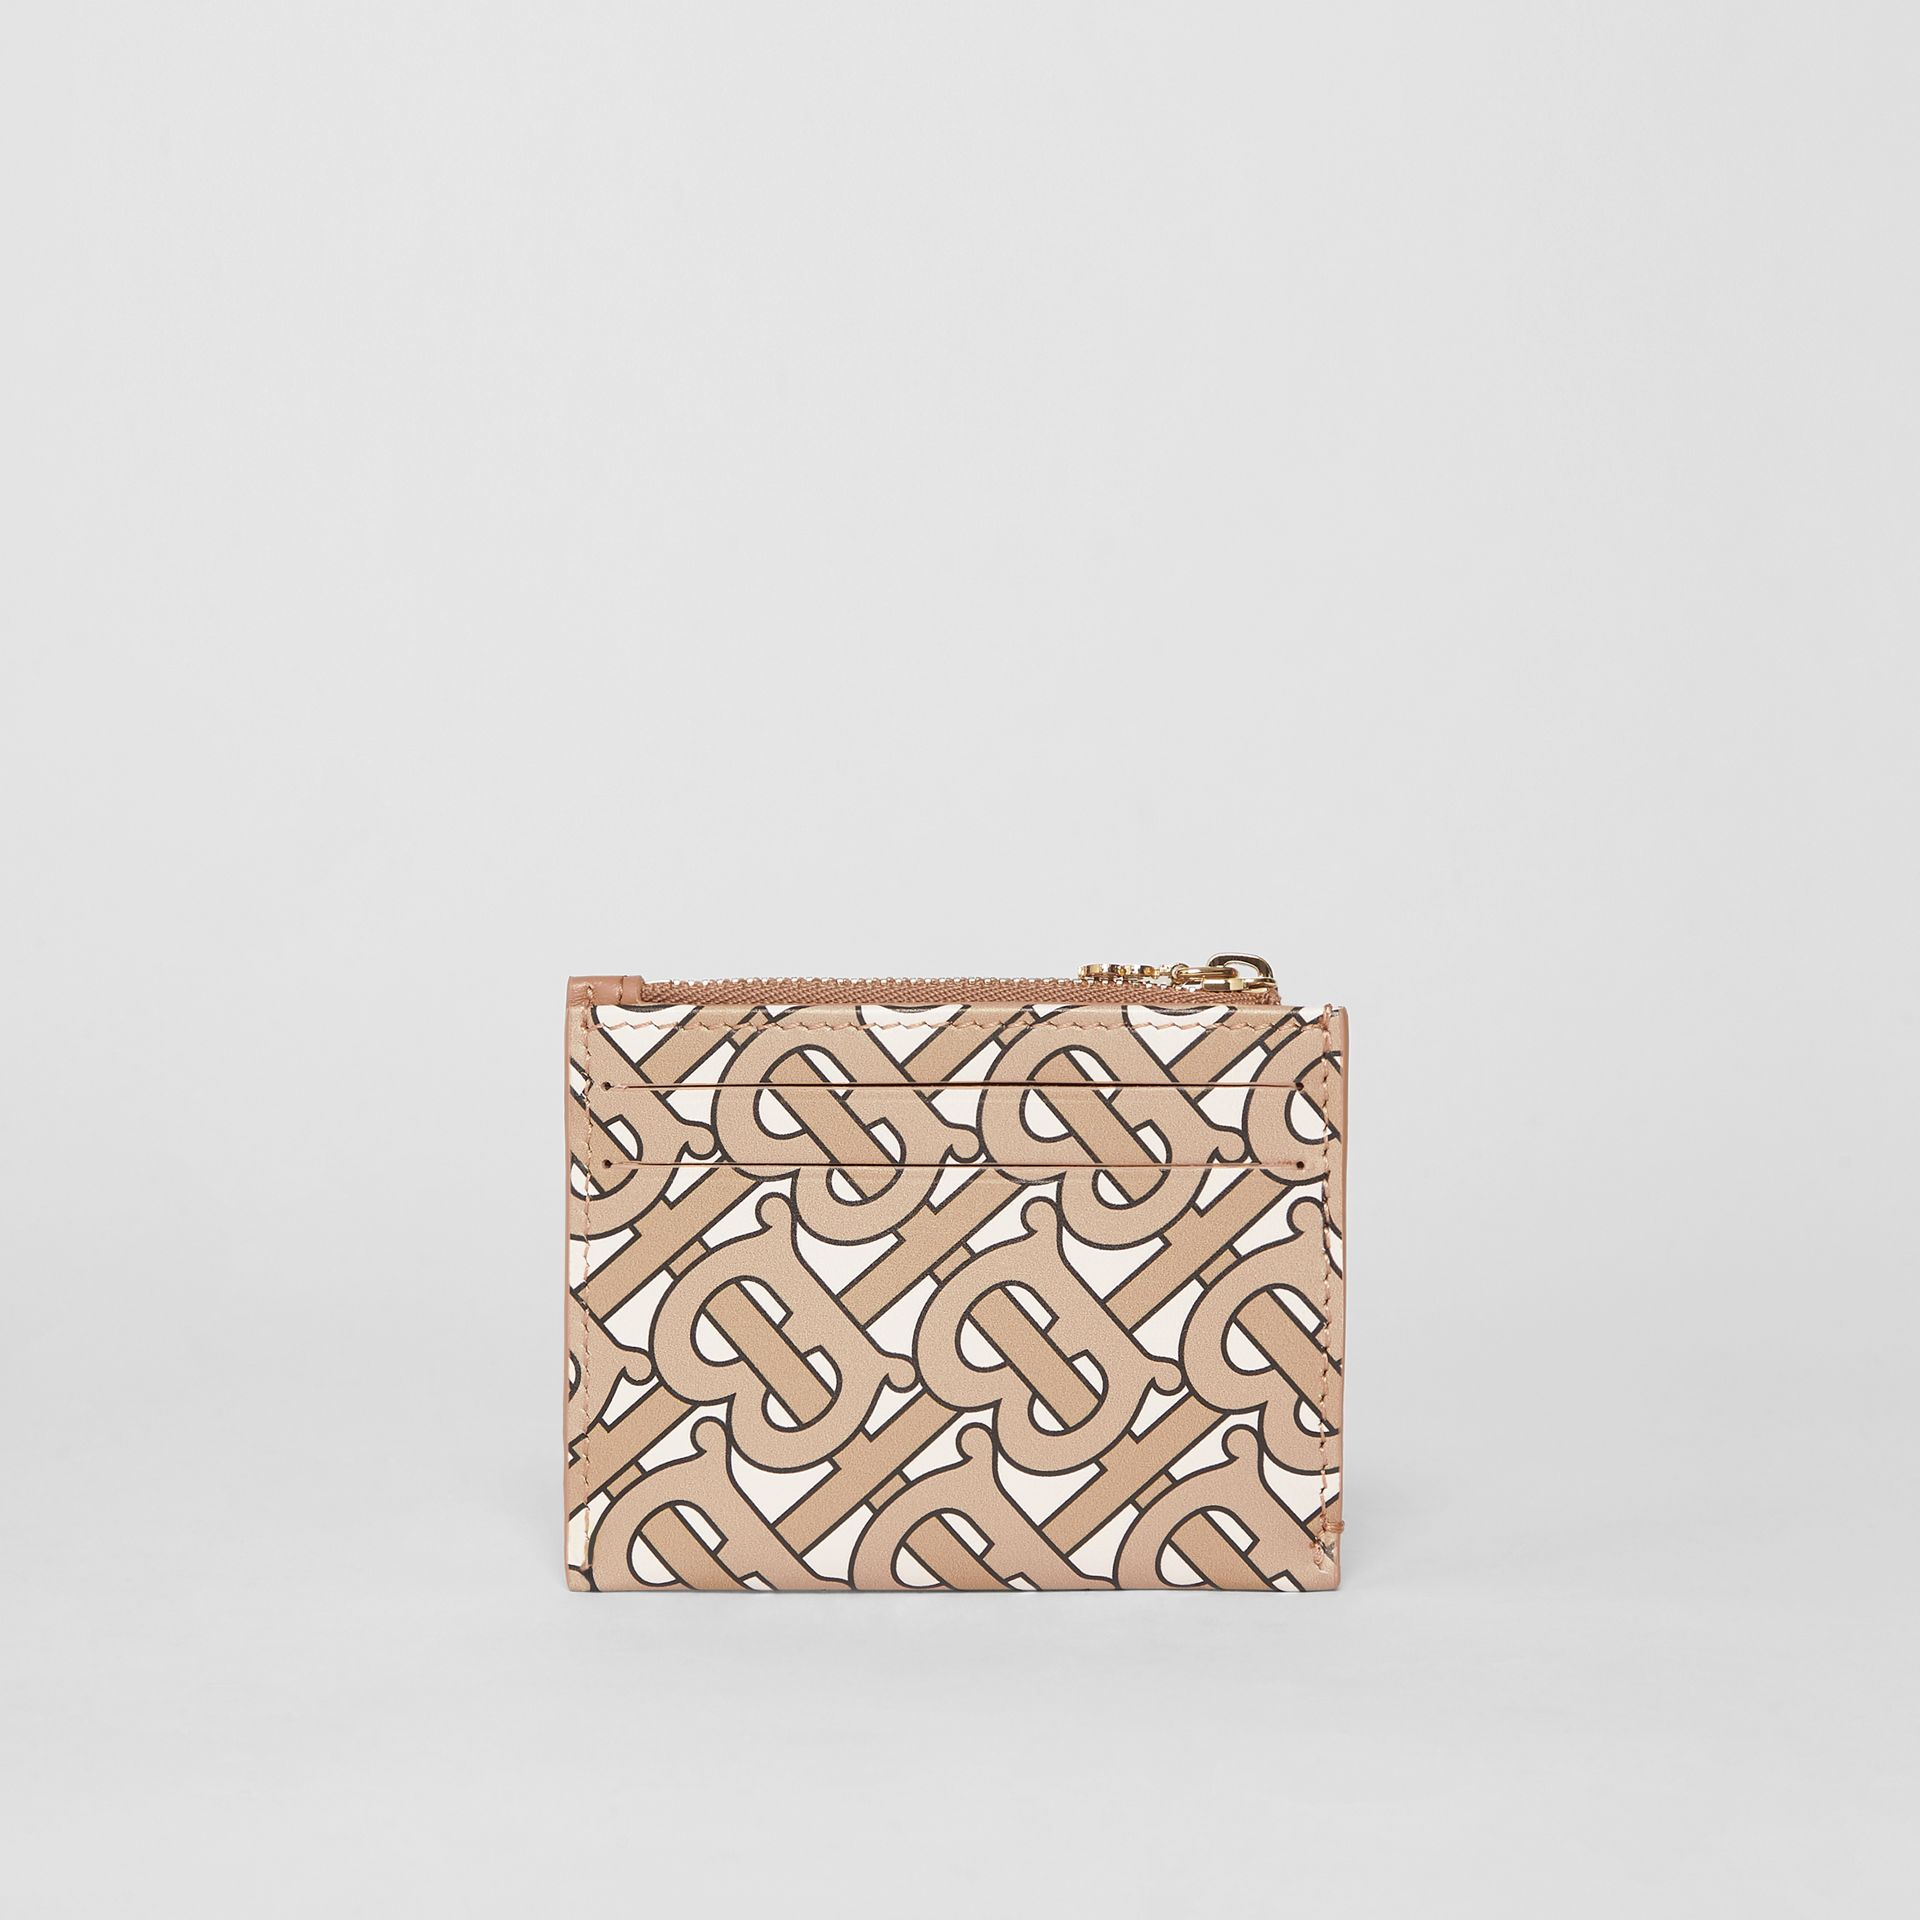 Monogram Print Leather Zip Card Case in Beige - Women | Burberry - gallery image 4